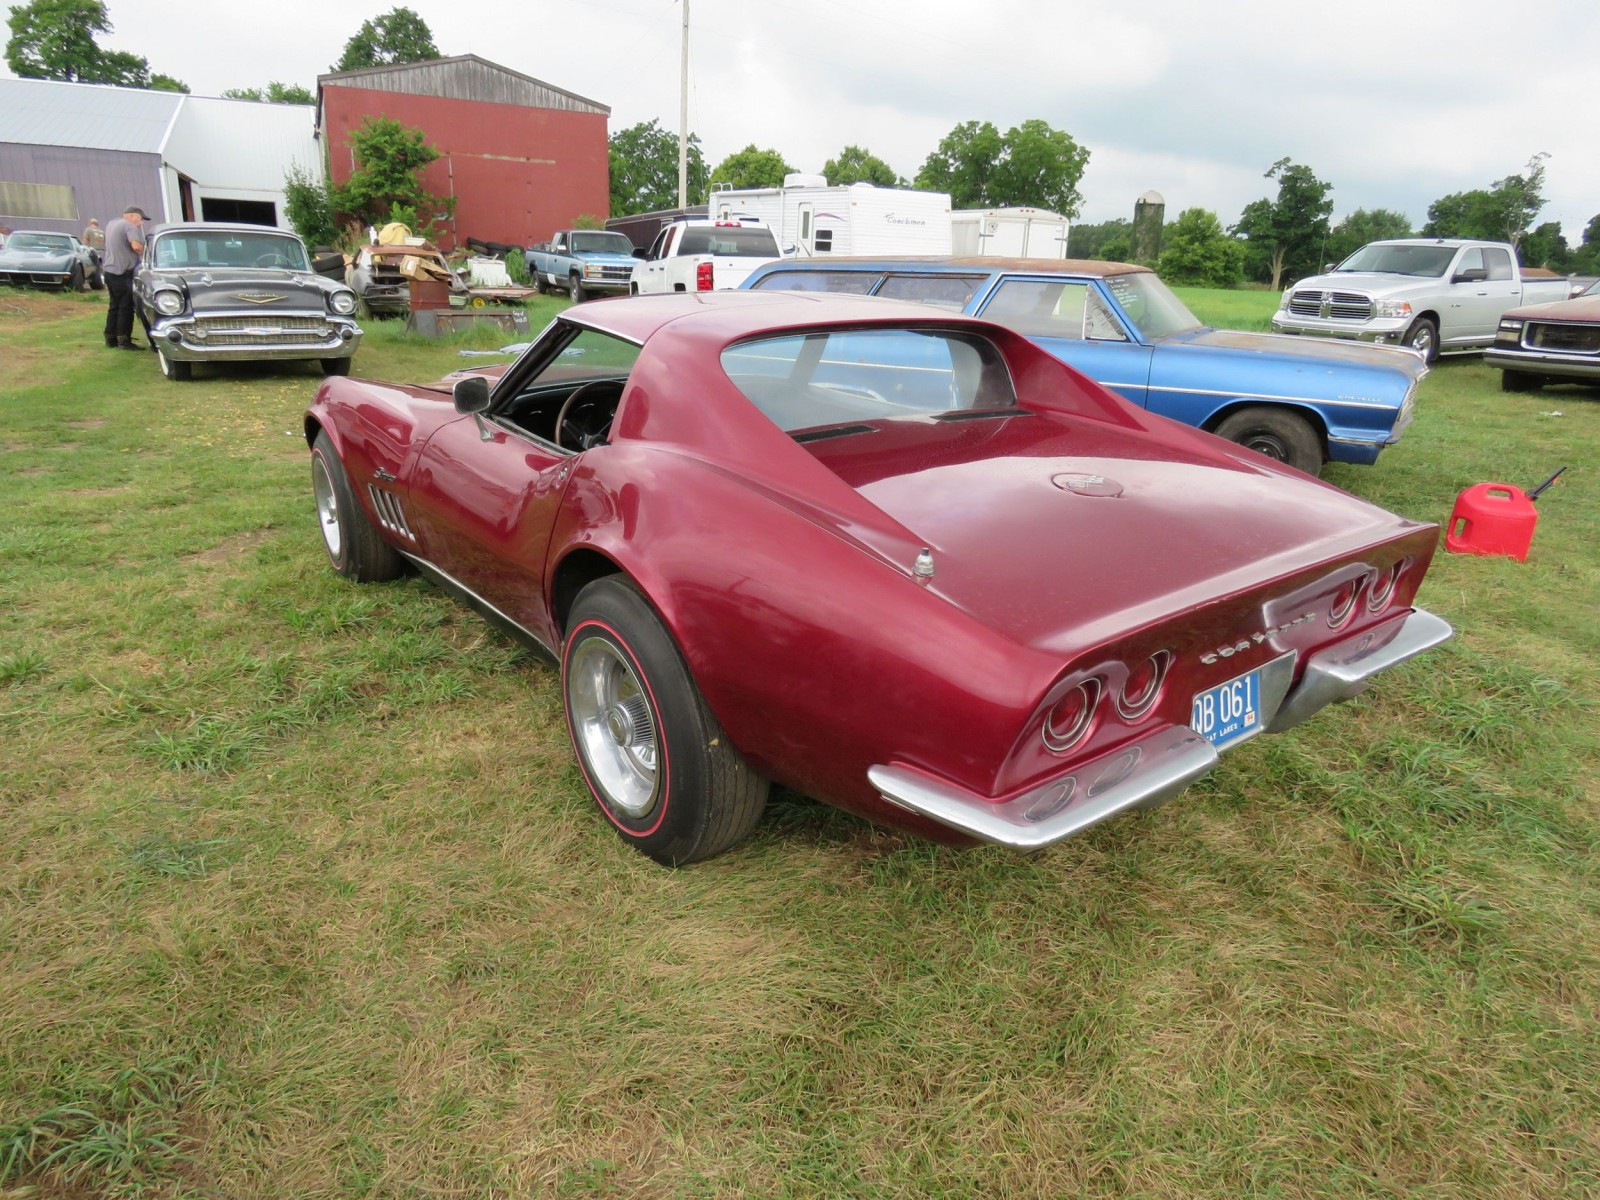 1968 Chevrolet Corvette Stingray Coupe - Image 7